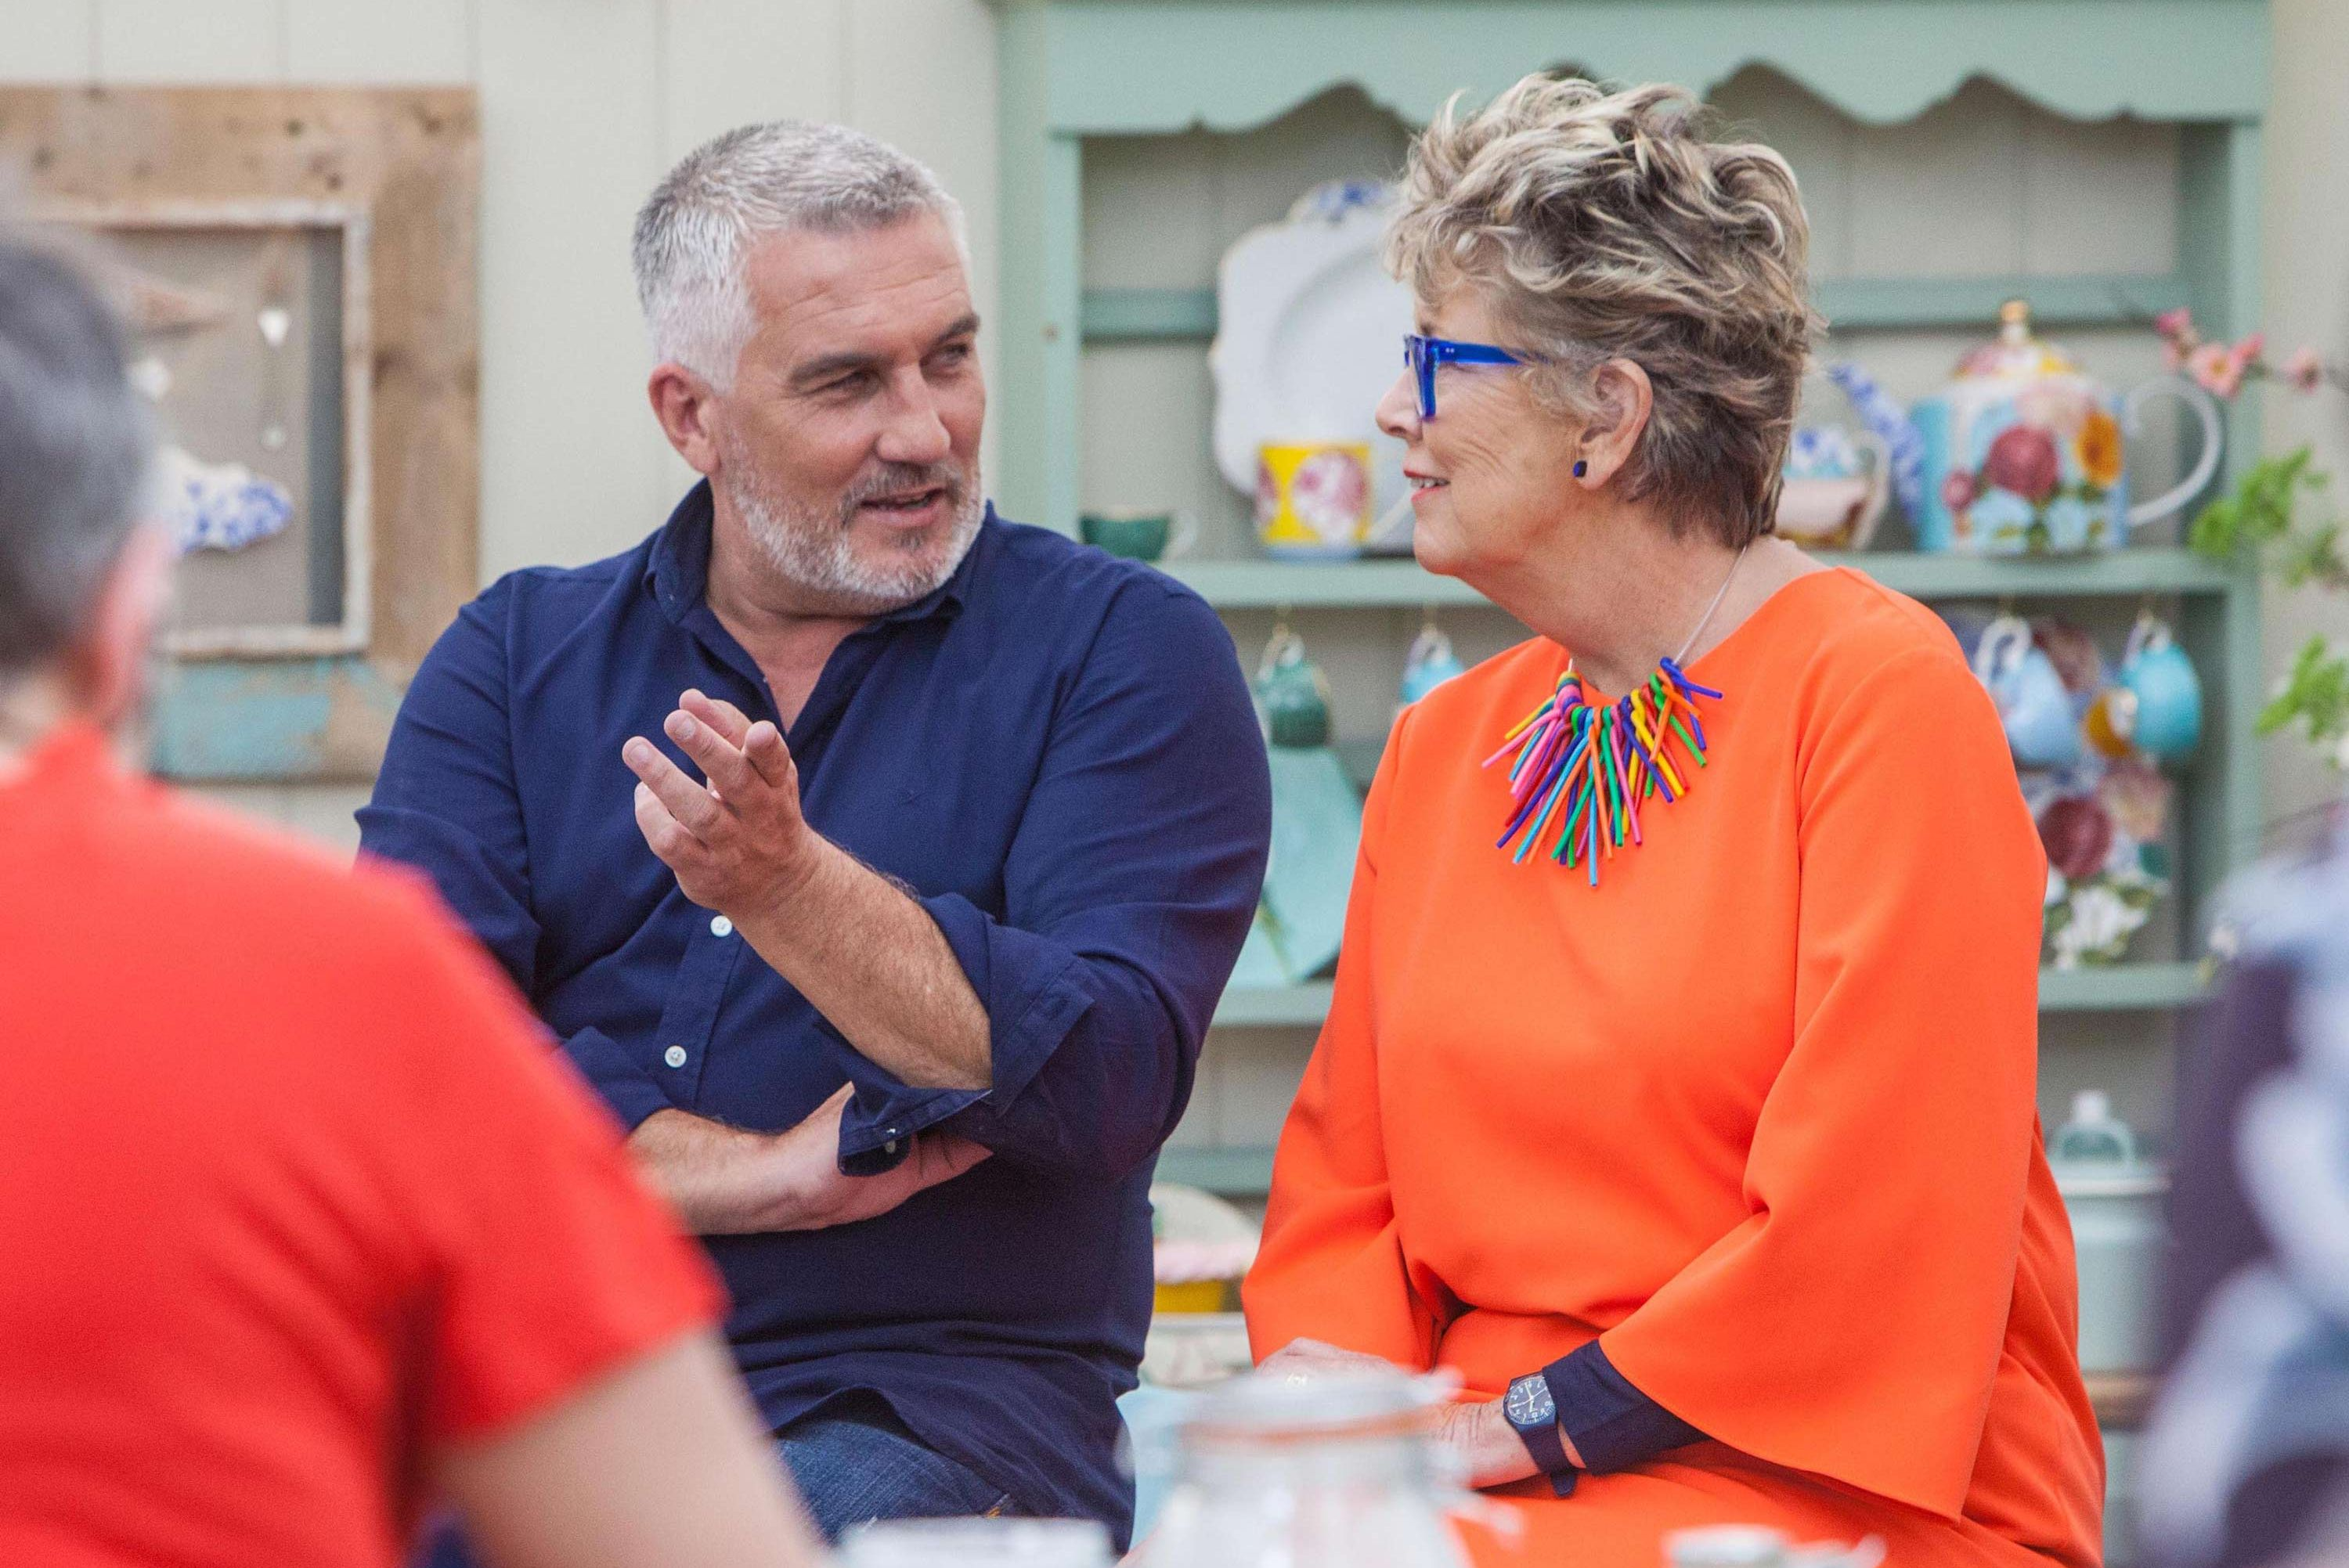 Paul Hollywood, Prue Leith, The Great British Bake Off 2018, GBBO